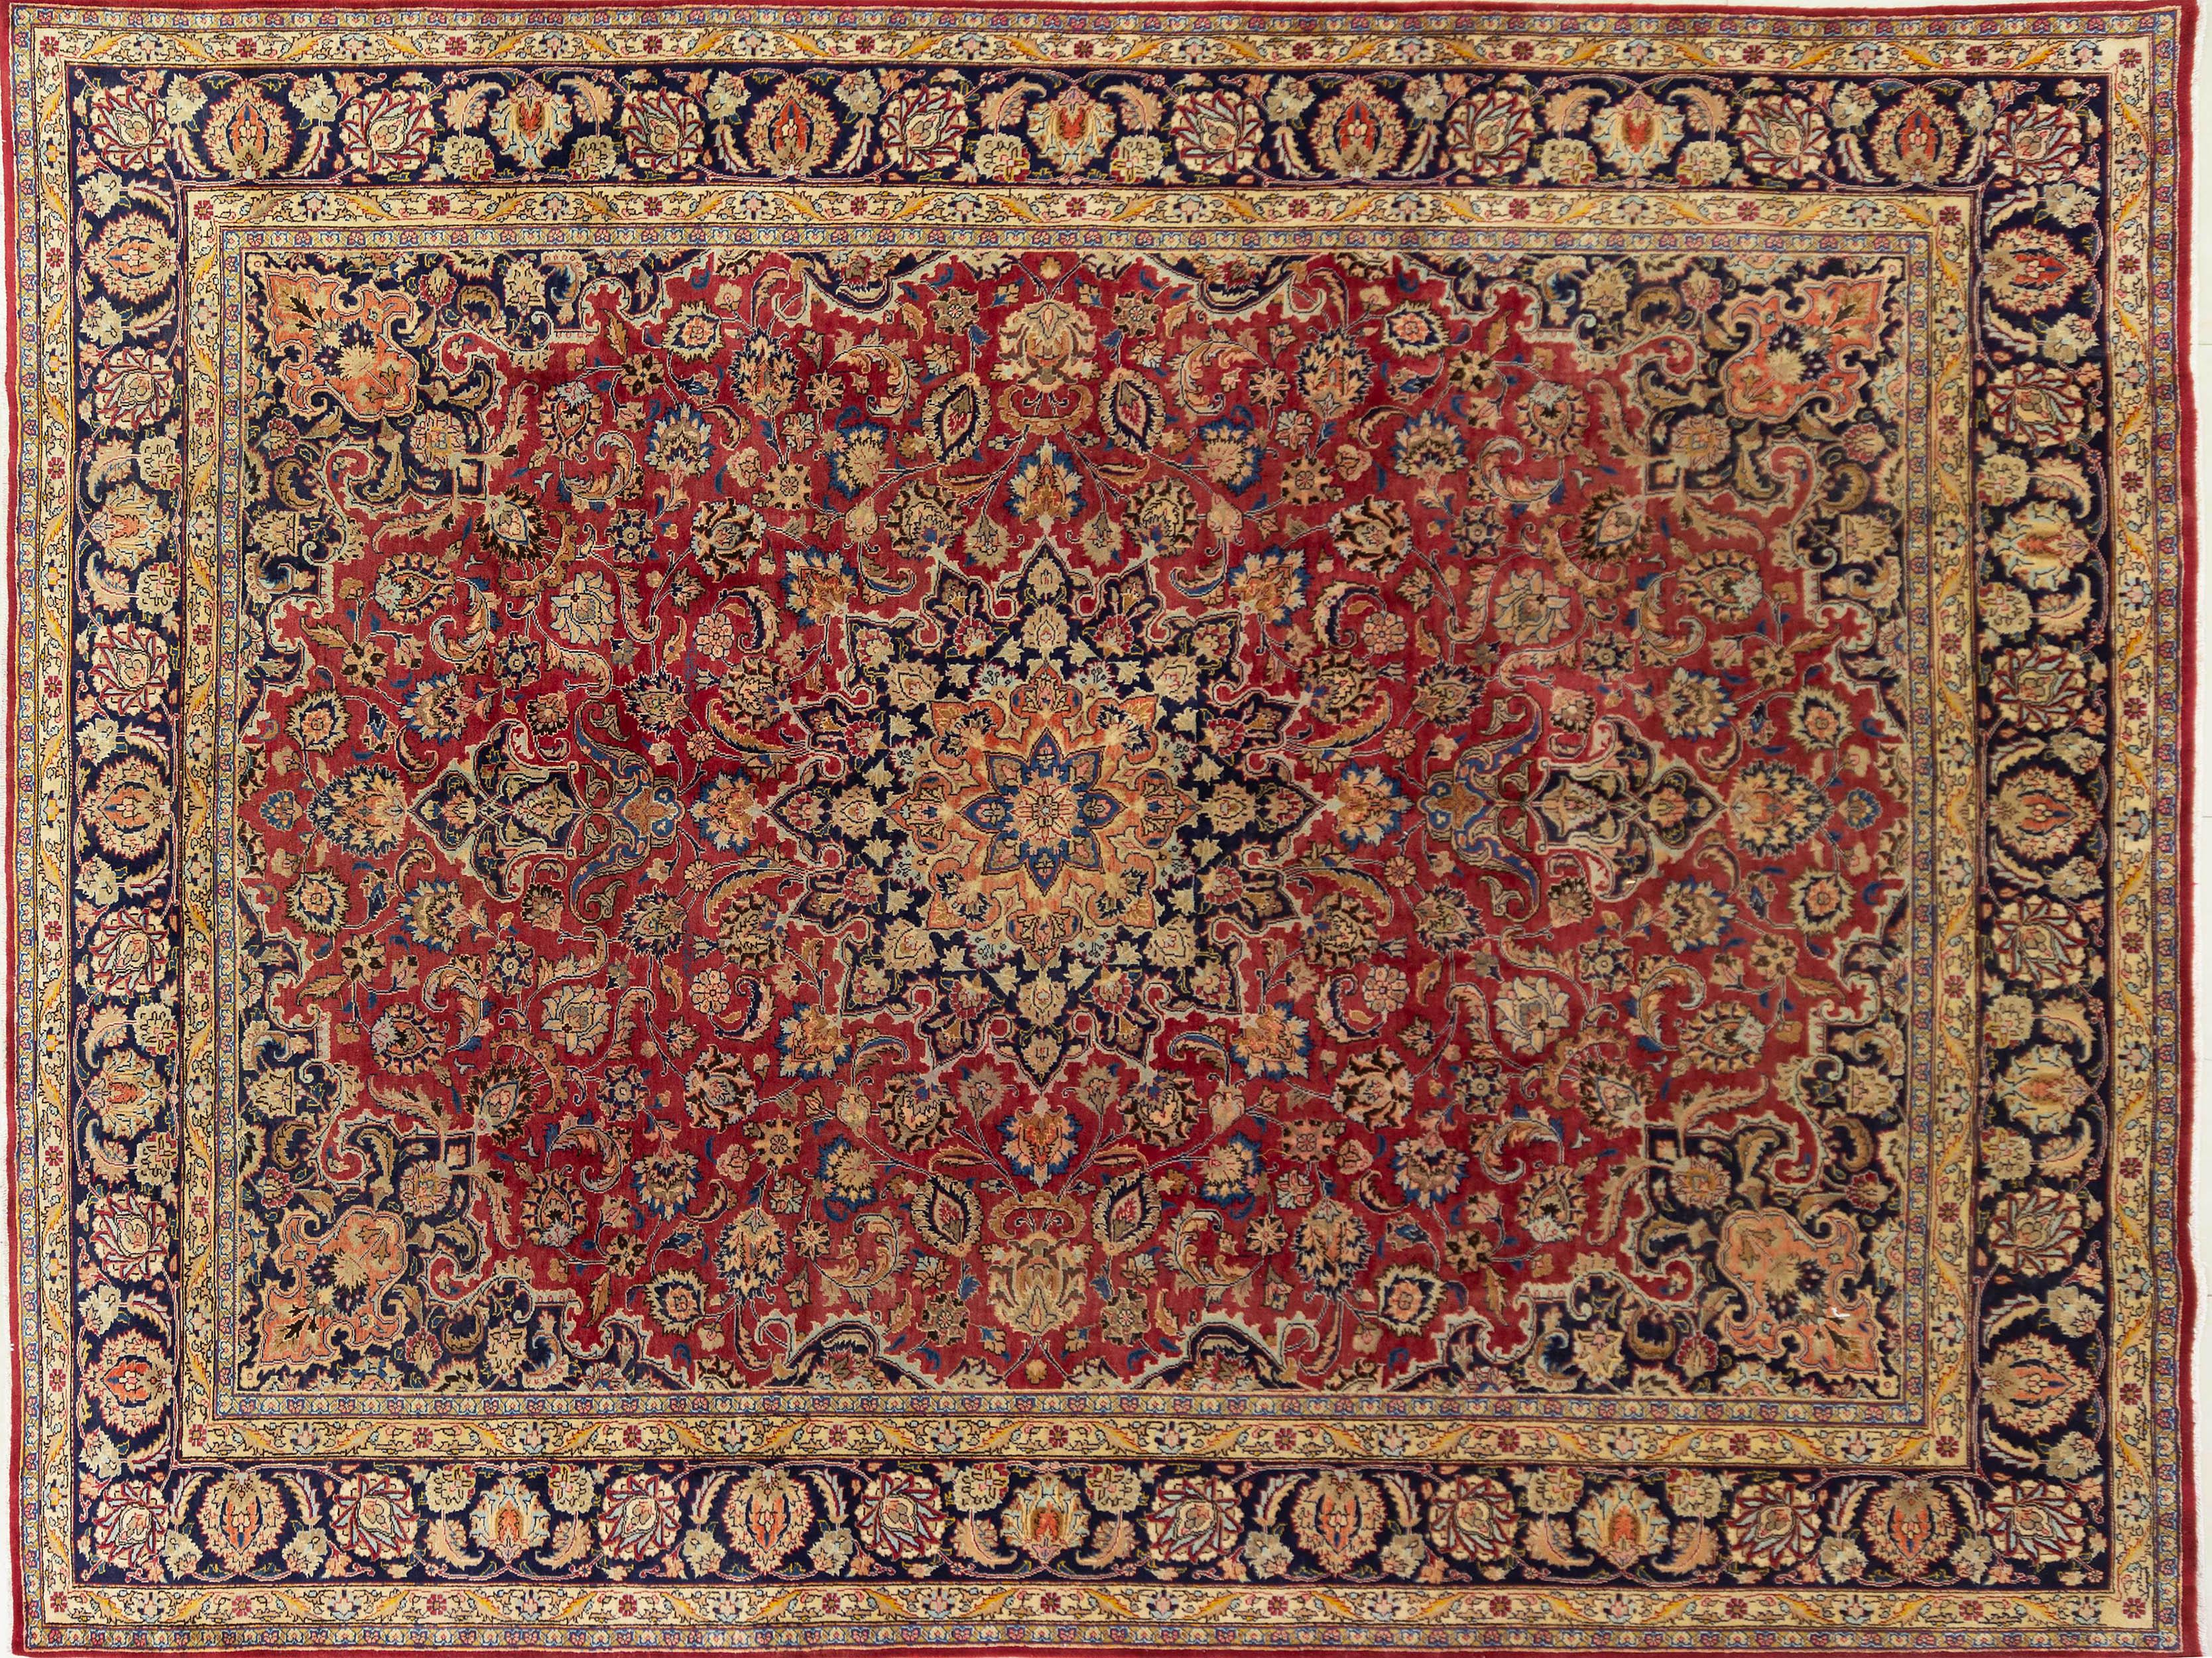 A Persian Hand Knotted Mashad Rug, 378 x 286